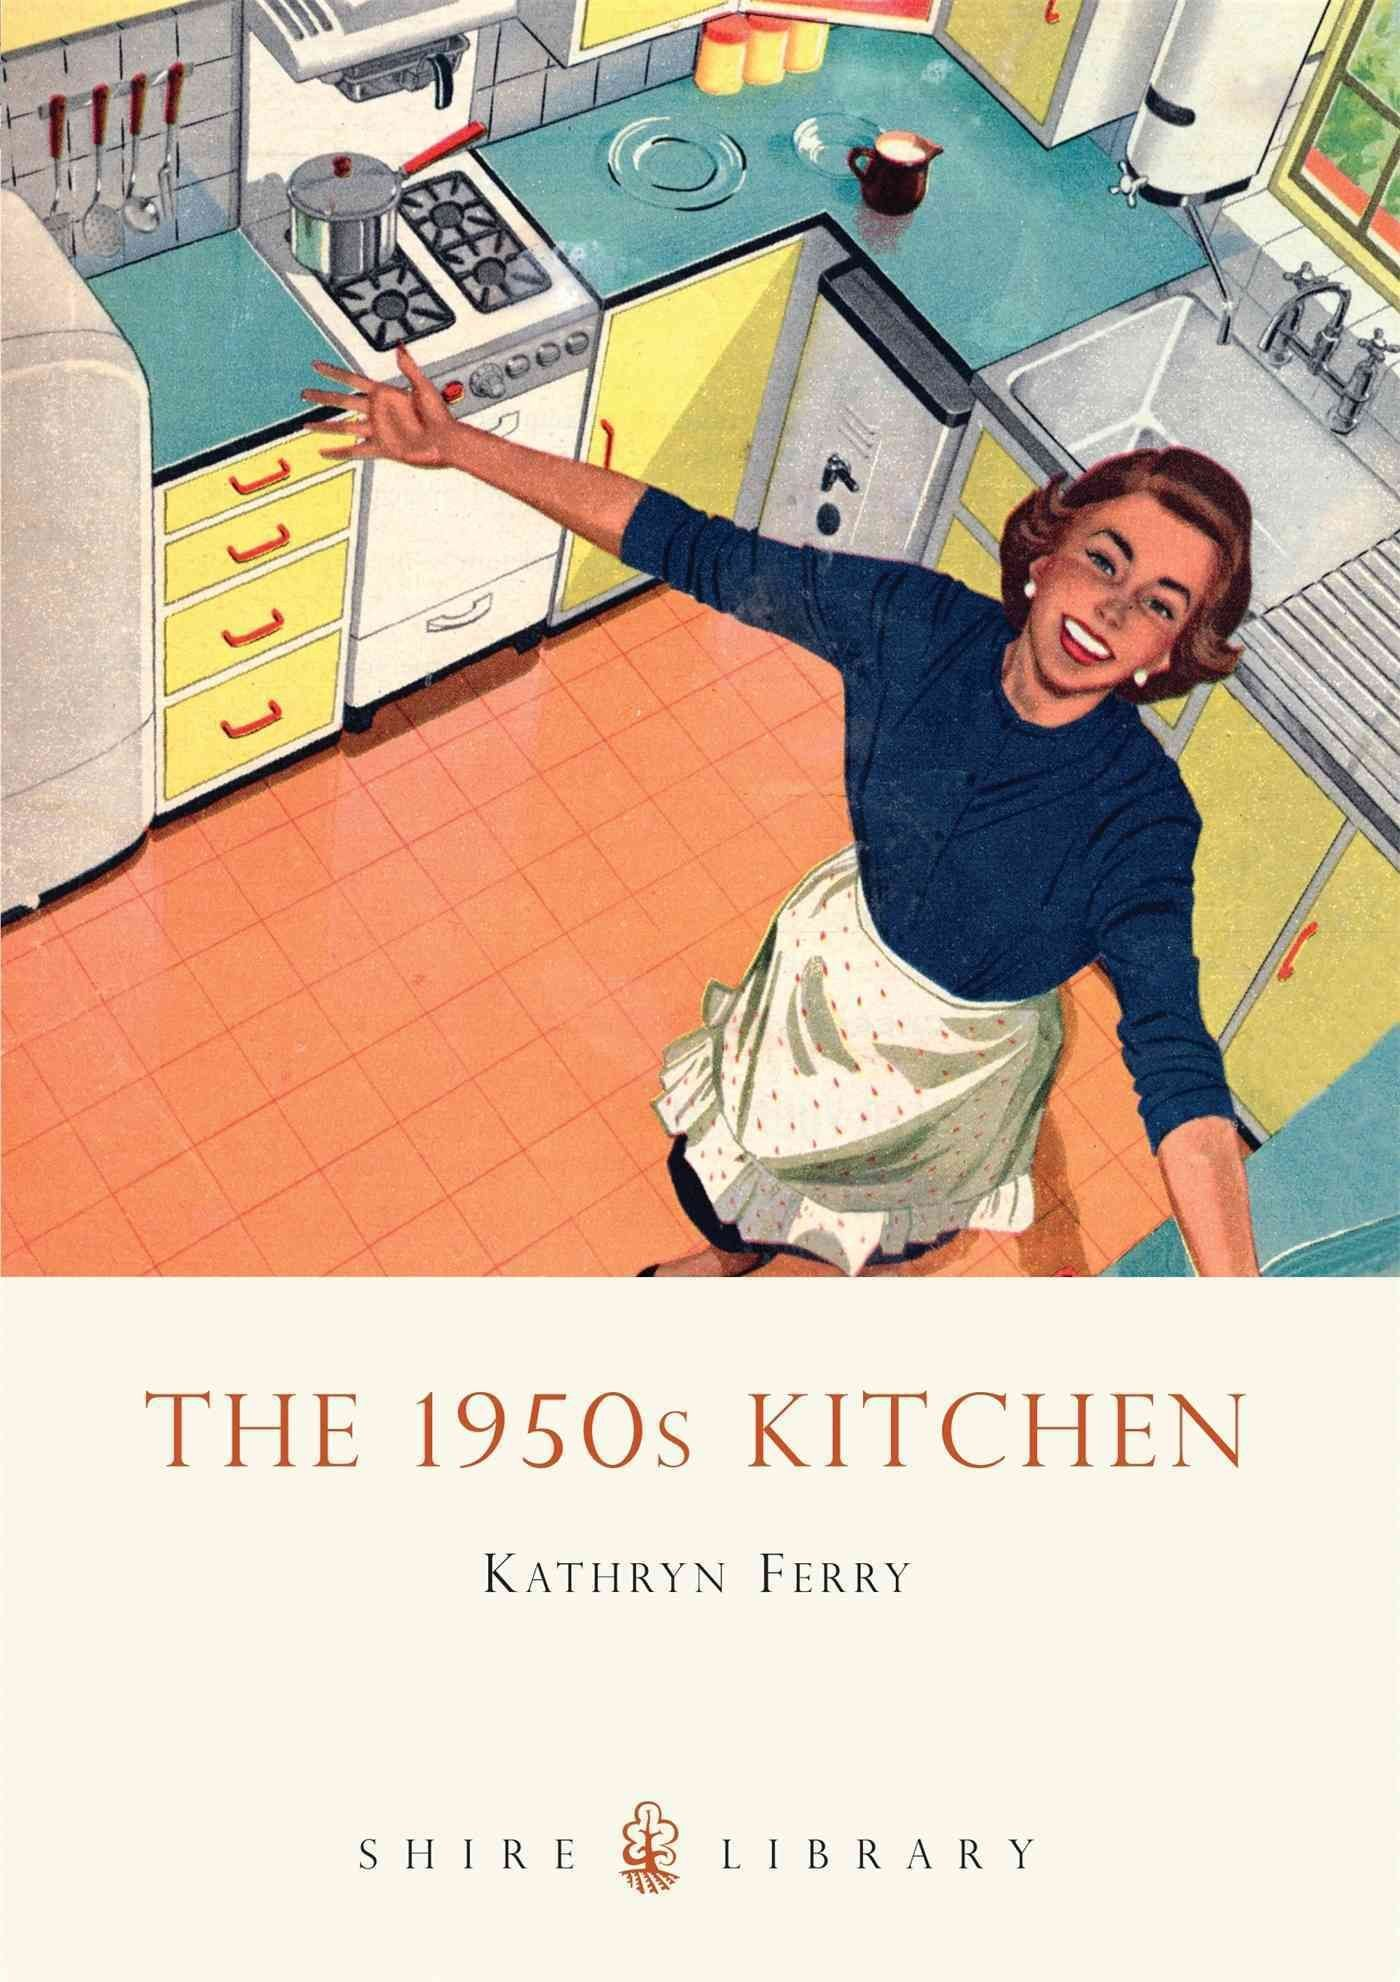 The 1950s Kitchen - Kathryn Ferry